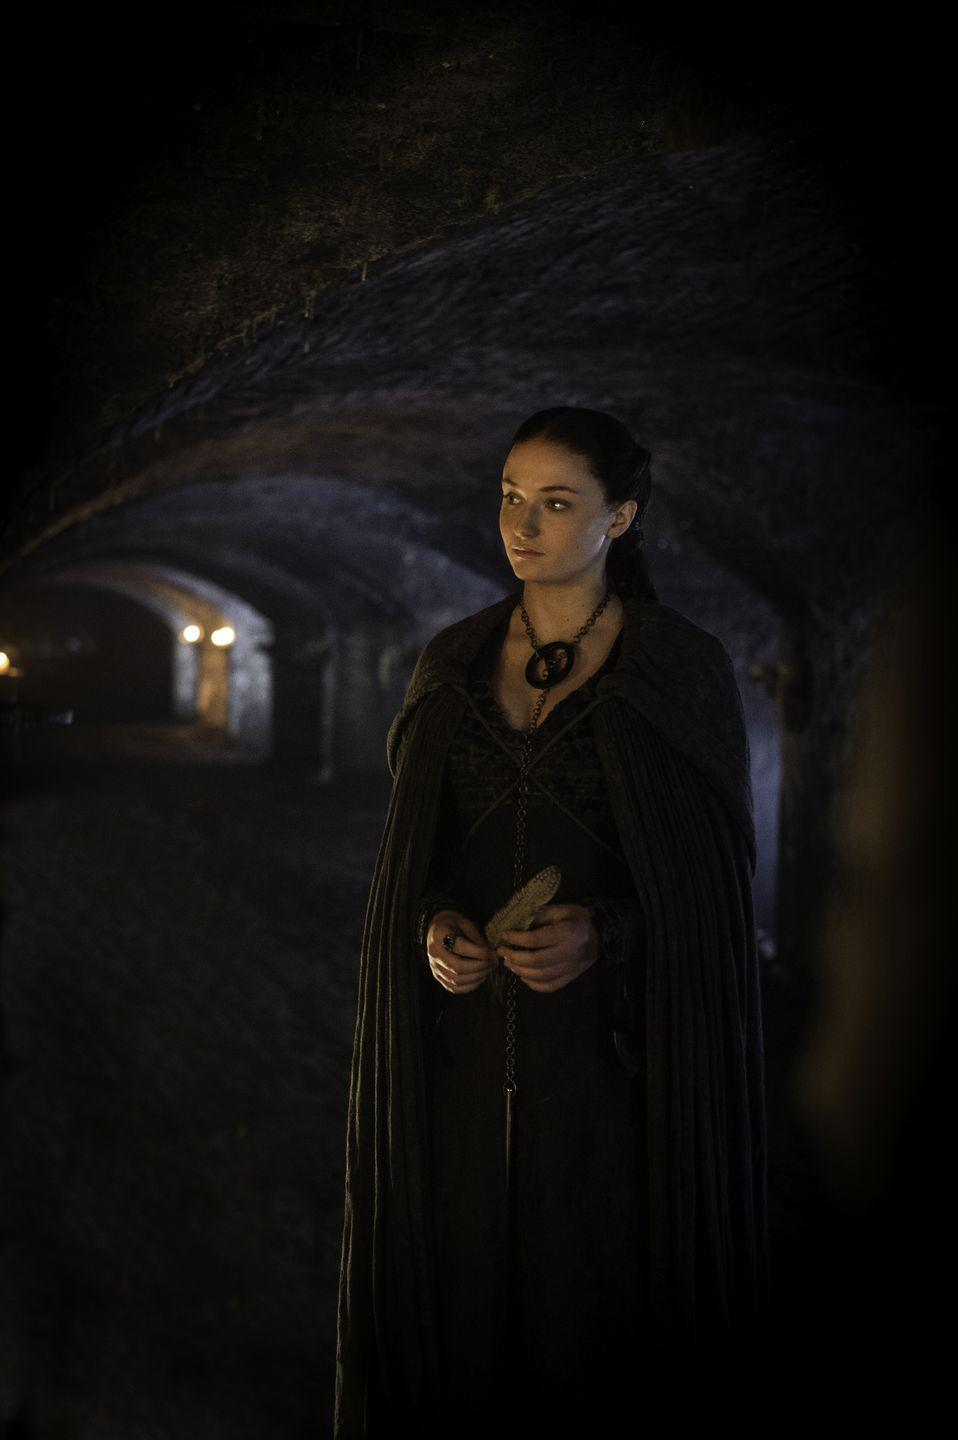 <p>When she returns to Winterfell in Season 5, Sansa maintains her dark look, but tones down her feathered shoulders, covering her dress with a cloak, as if to symbolize the loss of power she feels around the Boltons. </p>